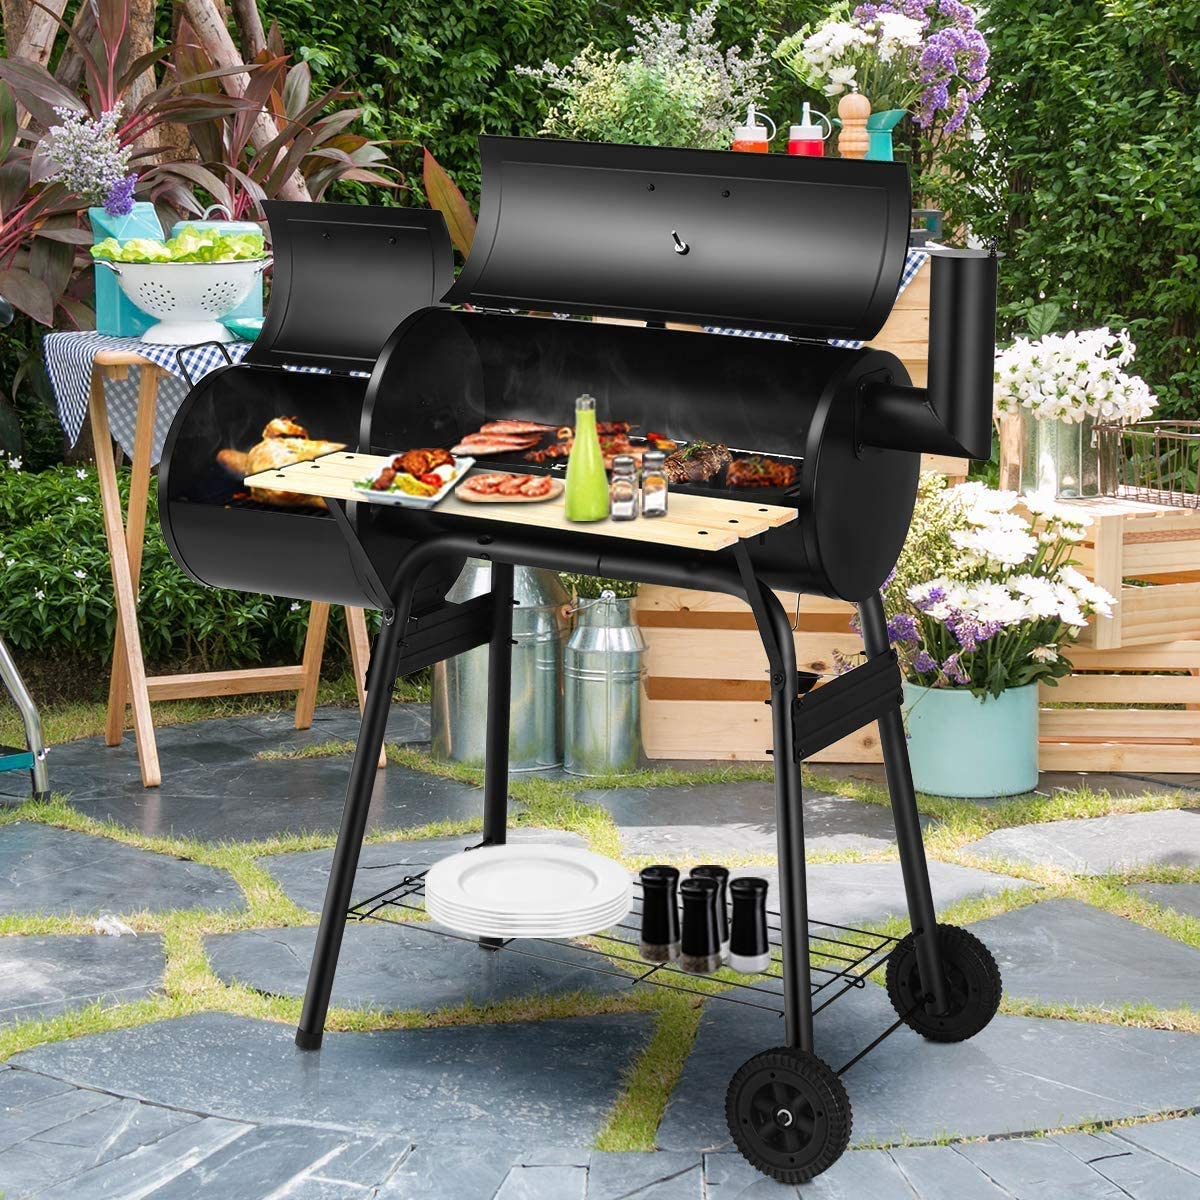 discount HAPPYGRILL Outdoor BBQ Grill Portable Charcoal Max 63% OFF Ov Barbecue